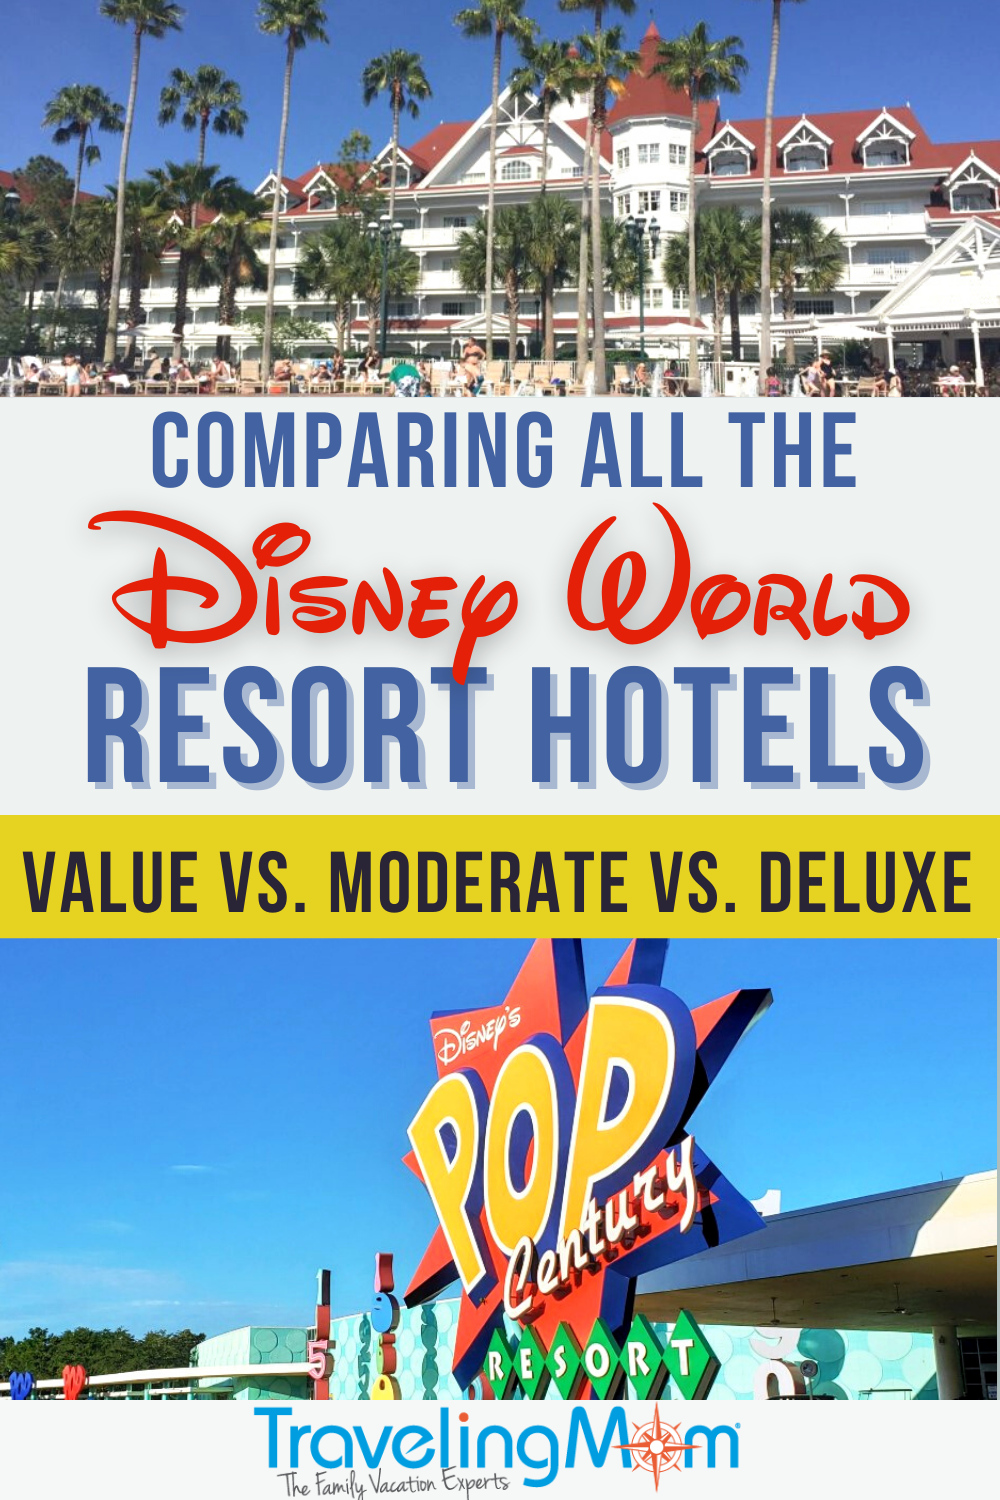 pin image with text comparing all the disney world resort hotels value vs moderate vs deluxe image of pop century hotel sign on bottom